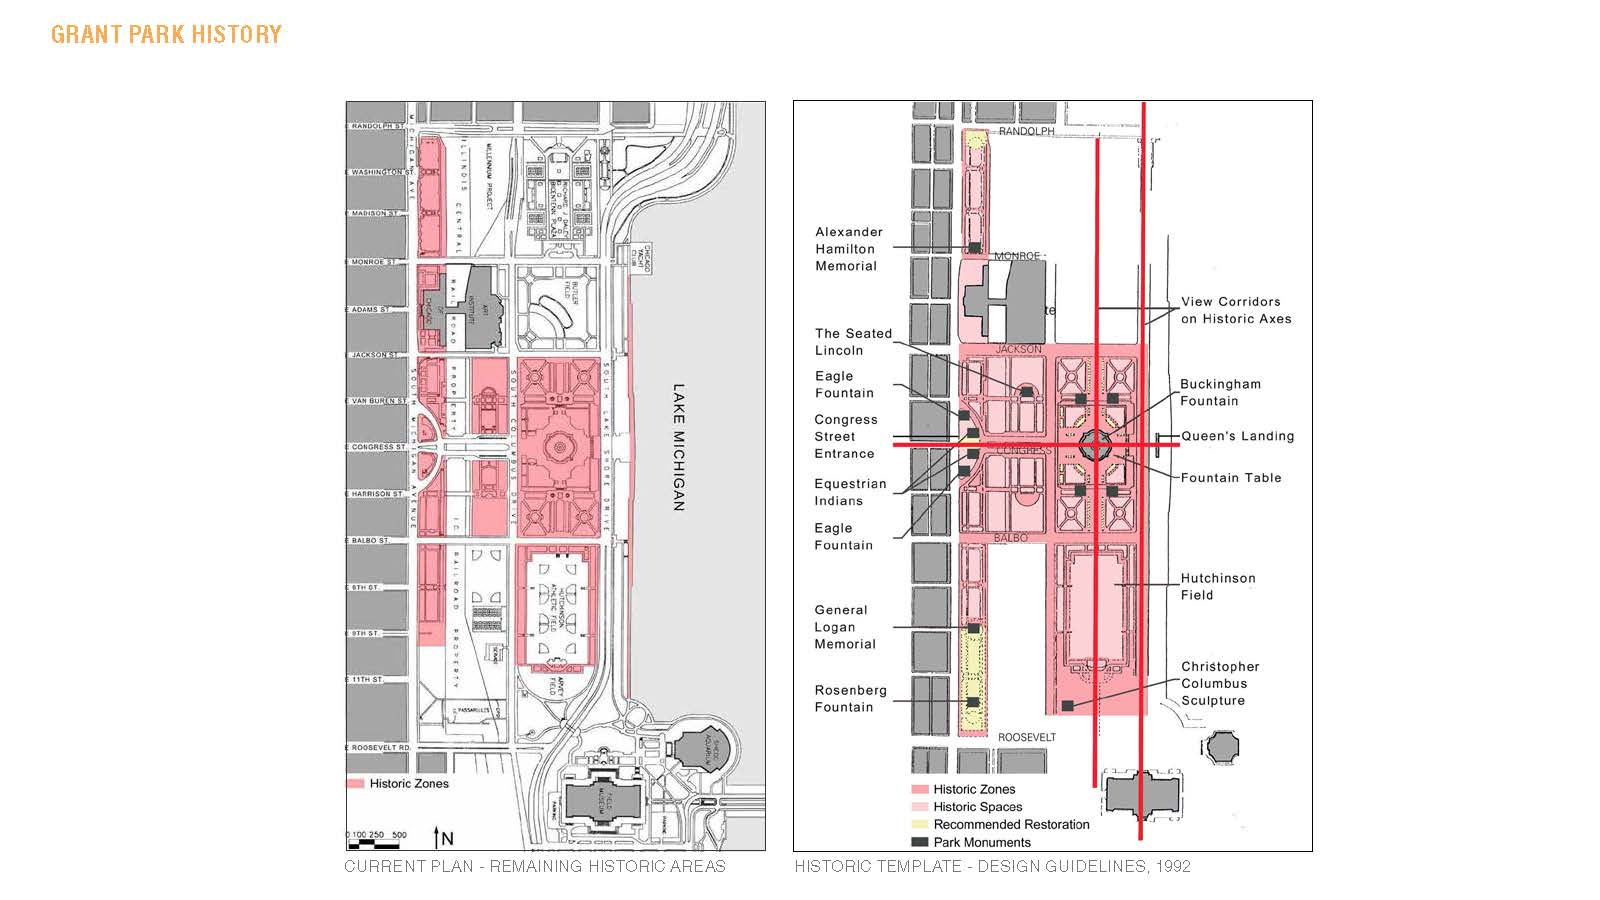 7741_20160713_South Grant Park Charrette Presentation_low res_Page_17.jpg